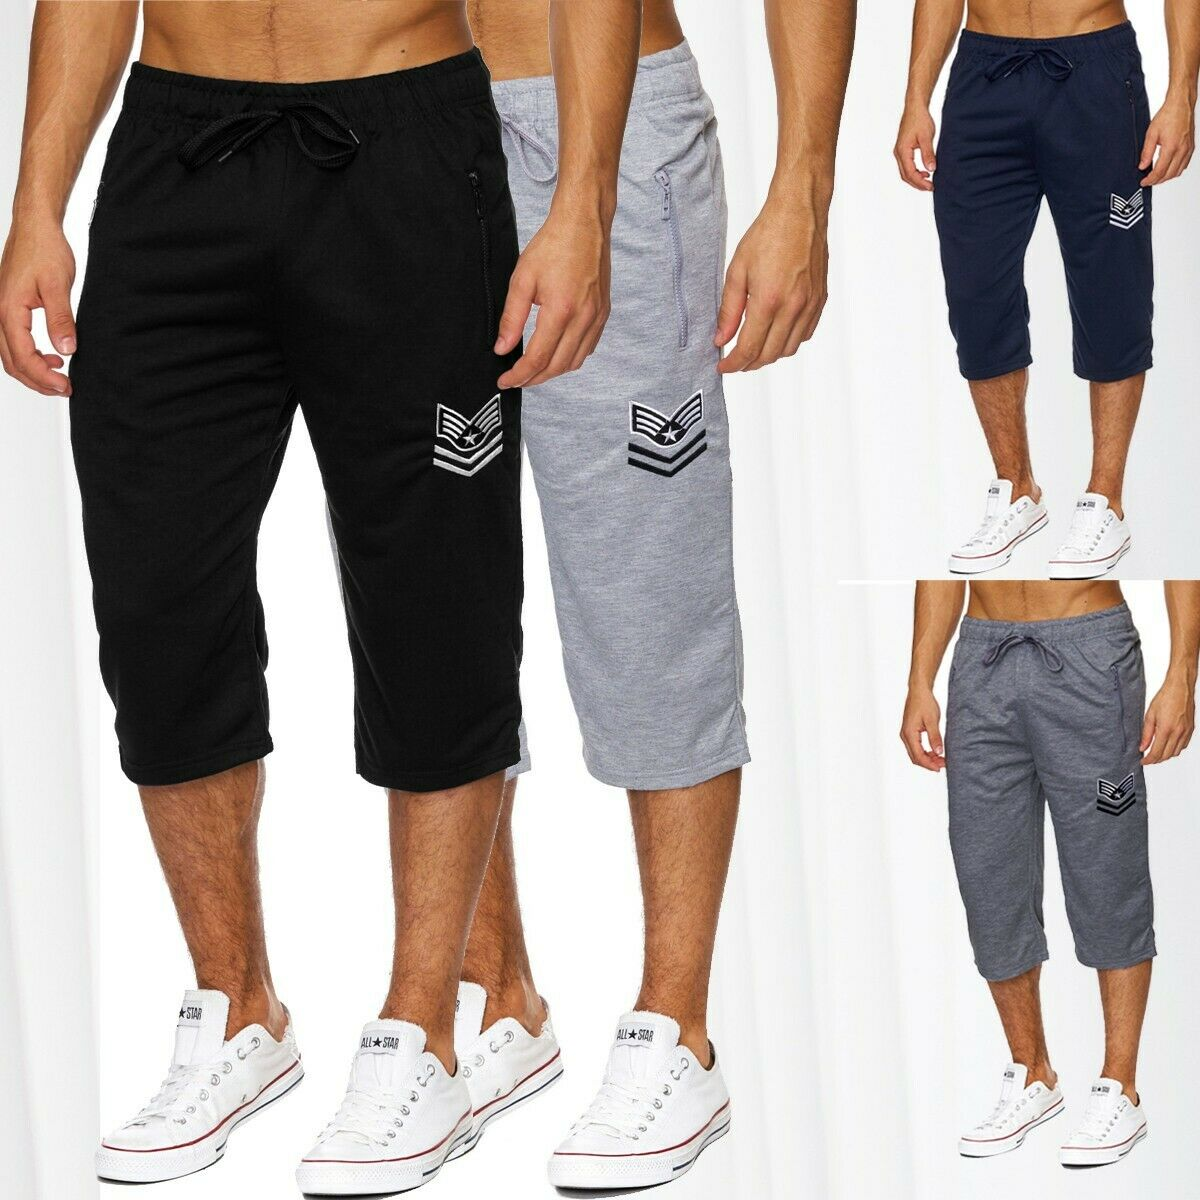 herren sweat shorts jogging sport kurze hose jogginghose baumwolle sommershorts eur 14 95. Black Bedroom Furniture Sets. Home Design Ideas